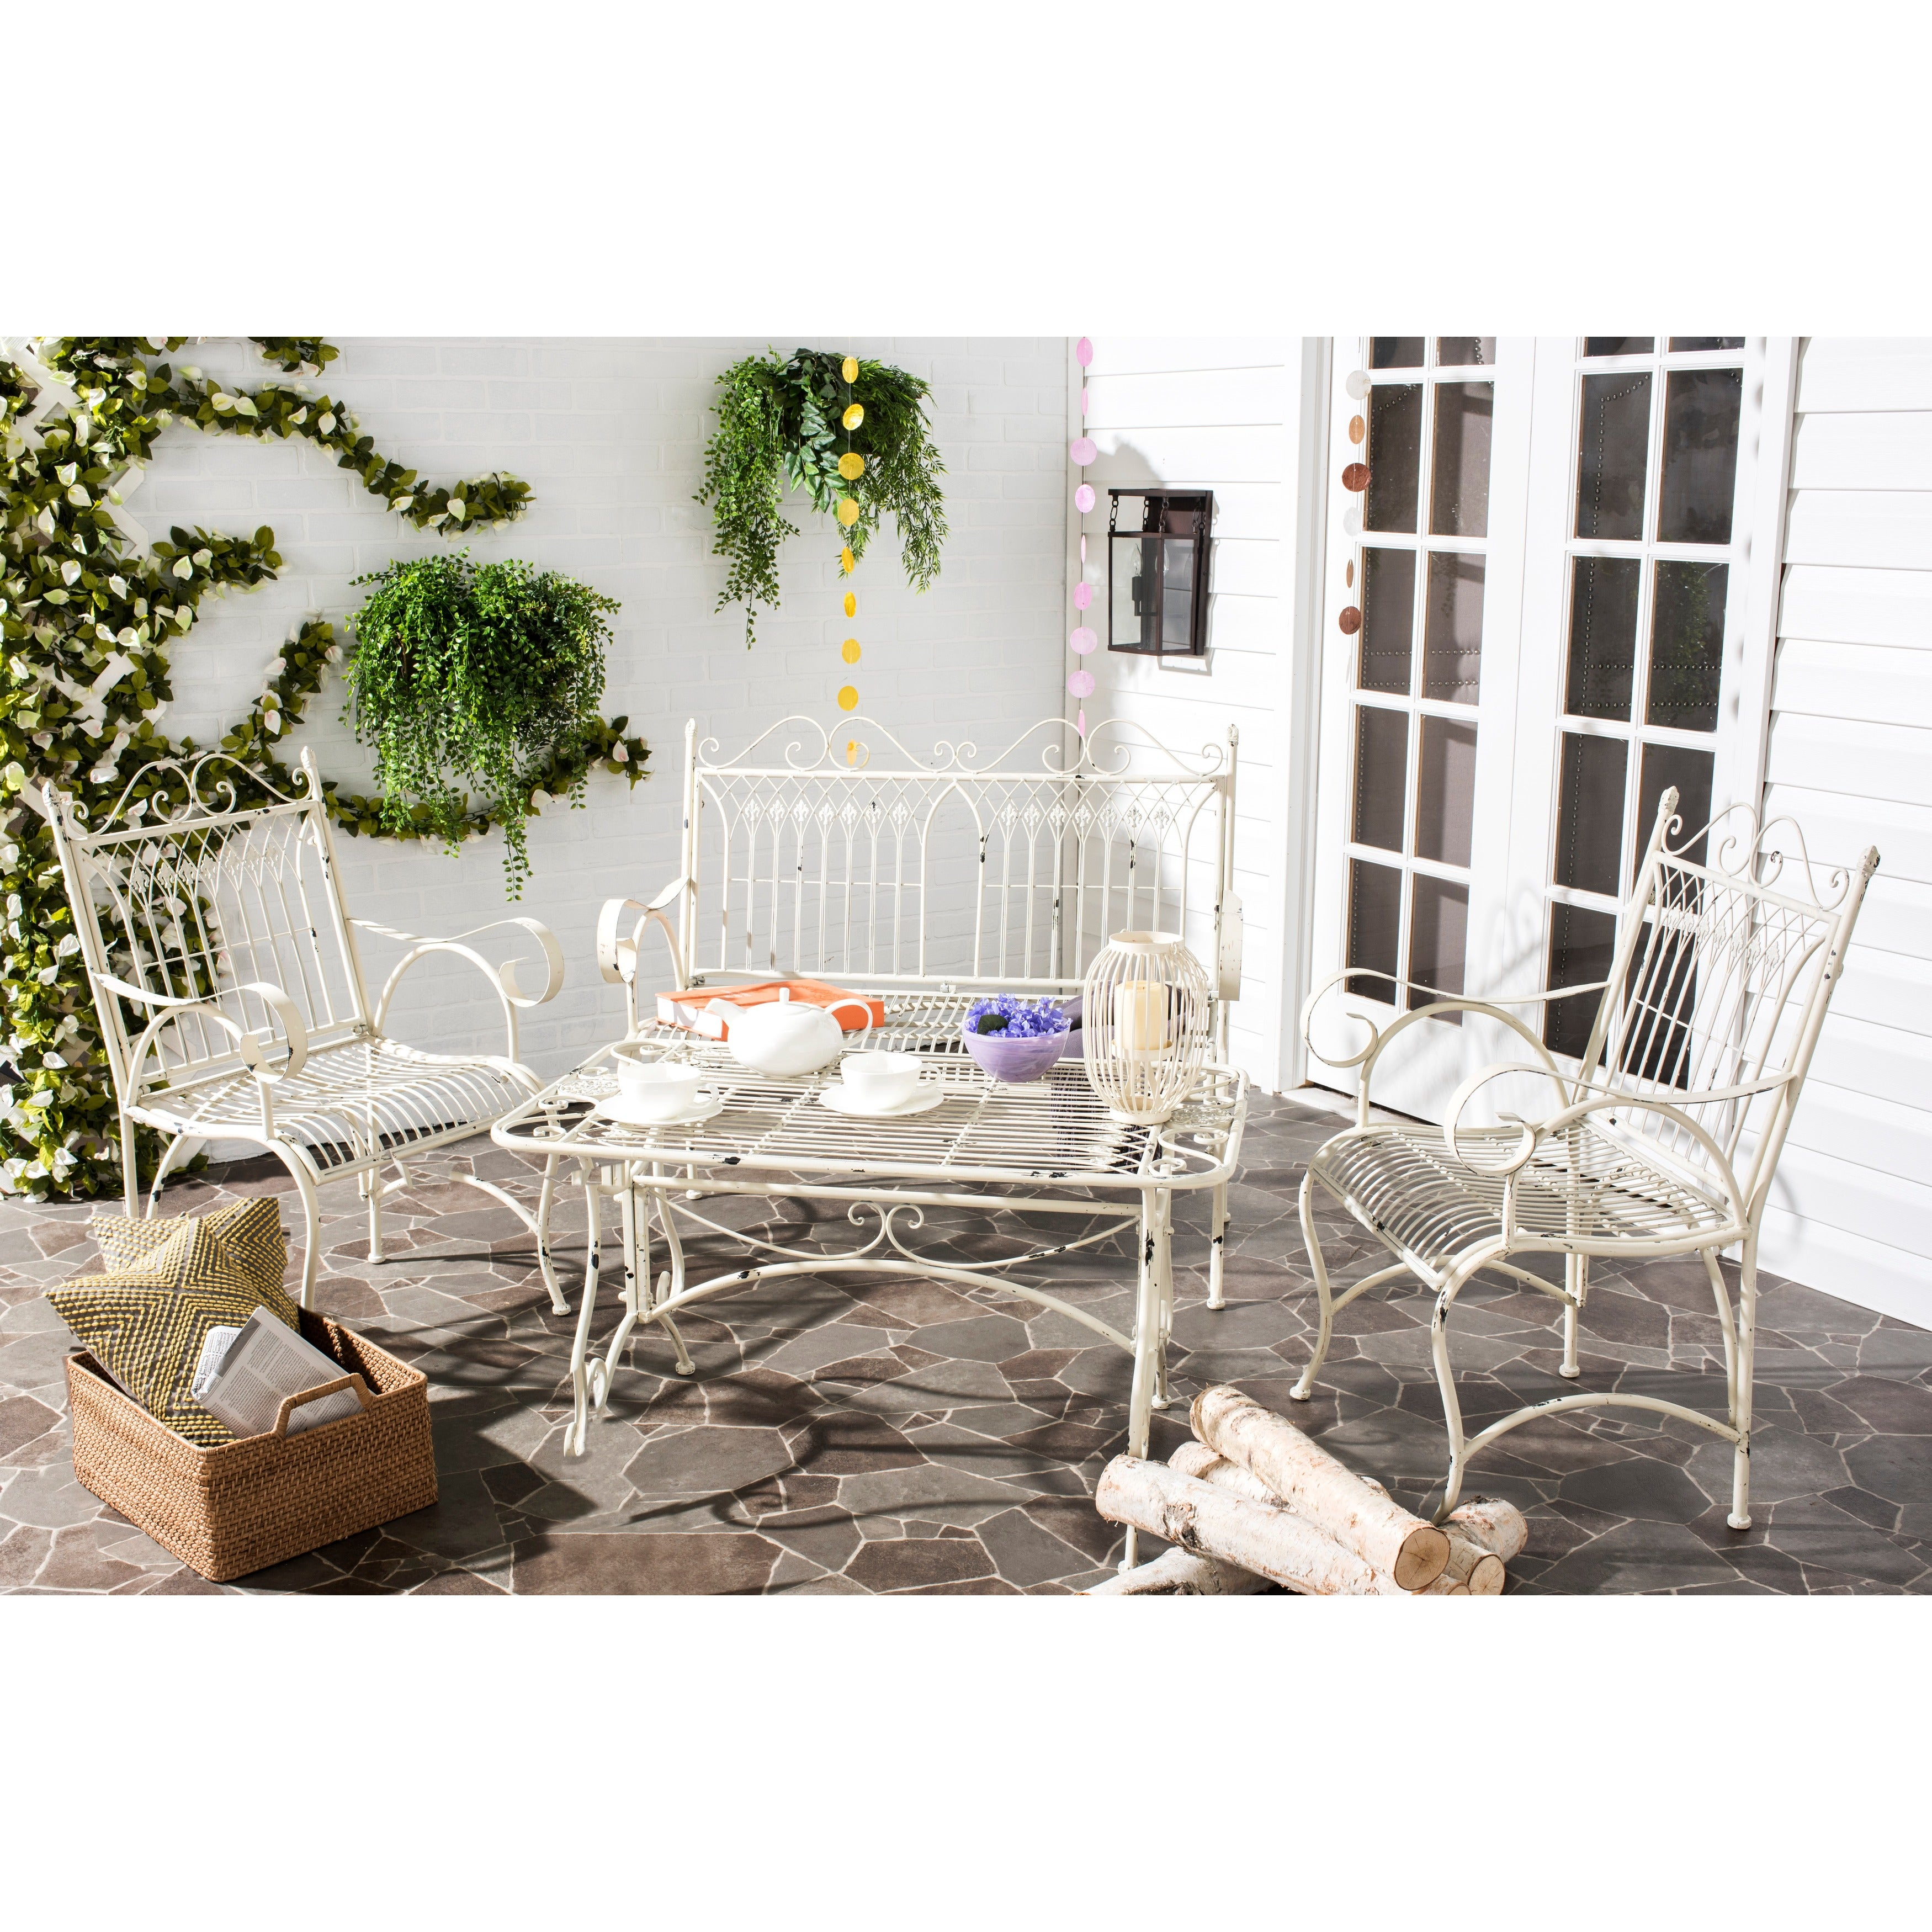 Shop Safavieh Outdoor Living Rustic Leah Antique White Iron Patio Set  (4 Piece)   Free Shipping Today   Overstock.com   10300227